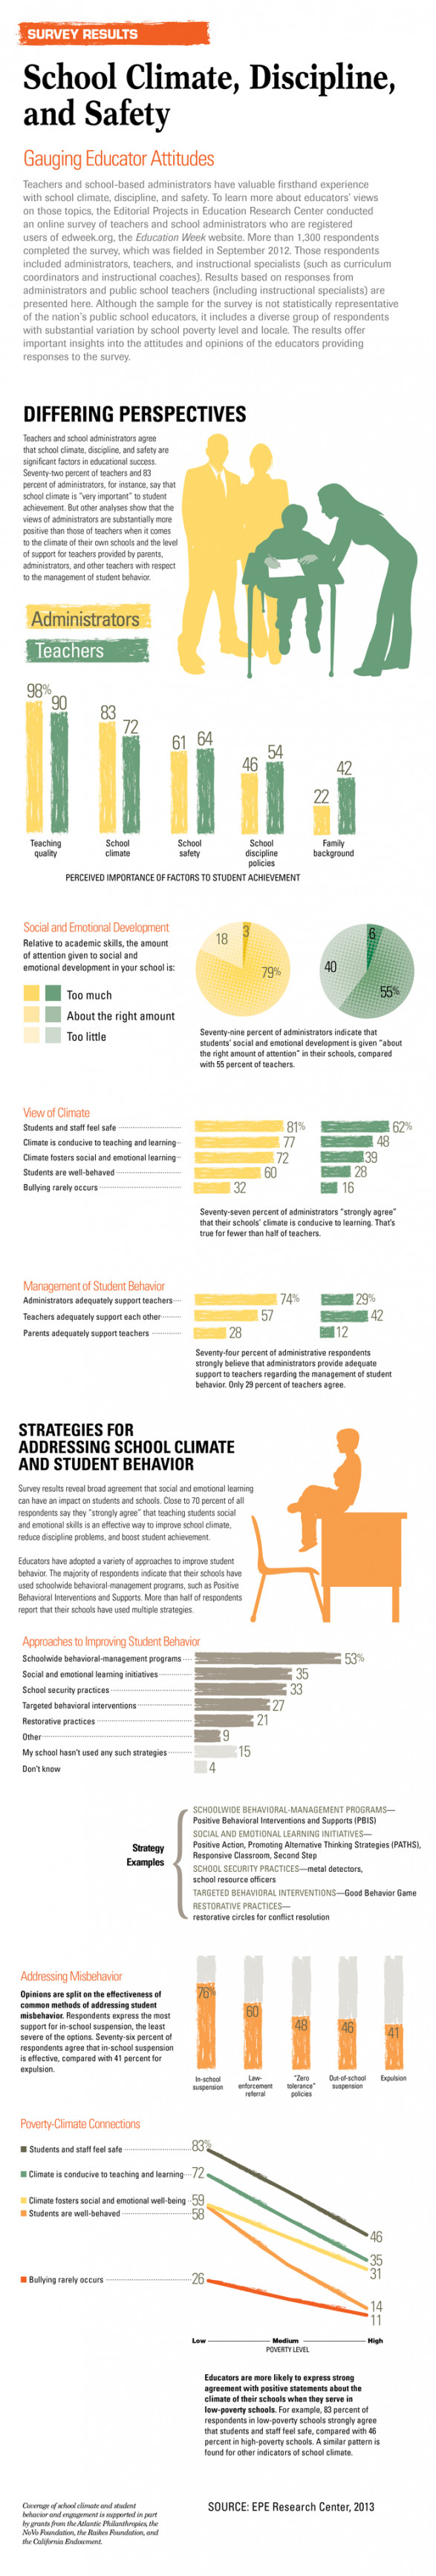 School Climate, Discipline, and Safety: Gauging Educator Attitudes